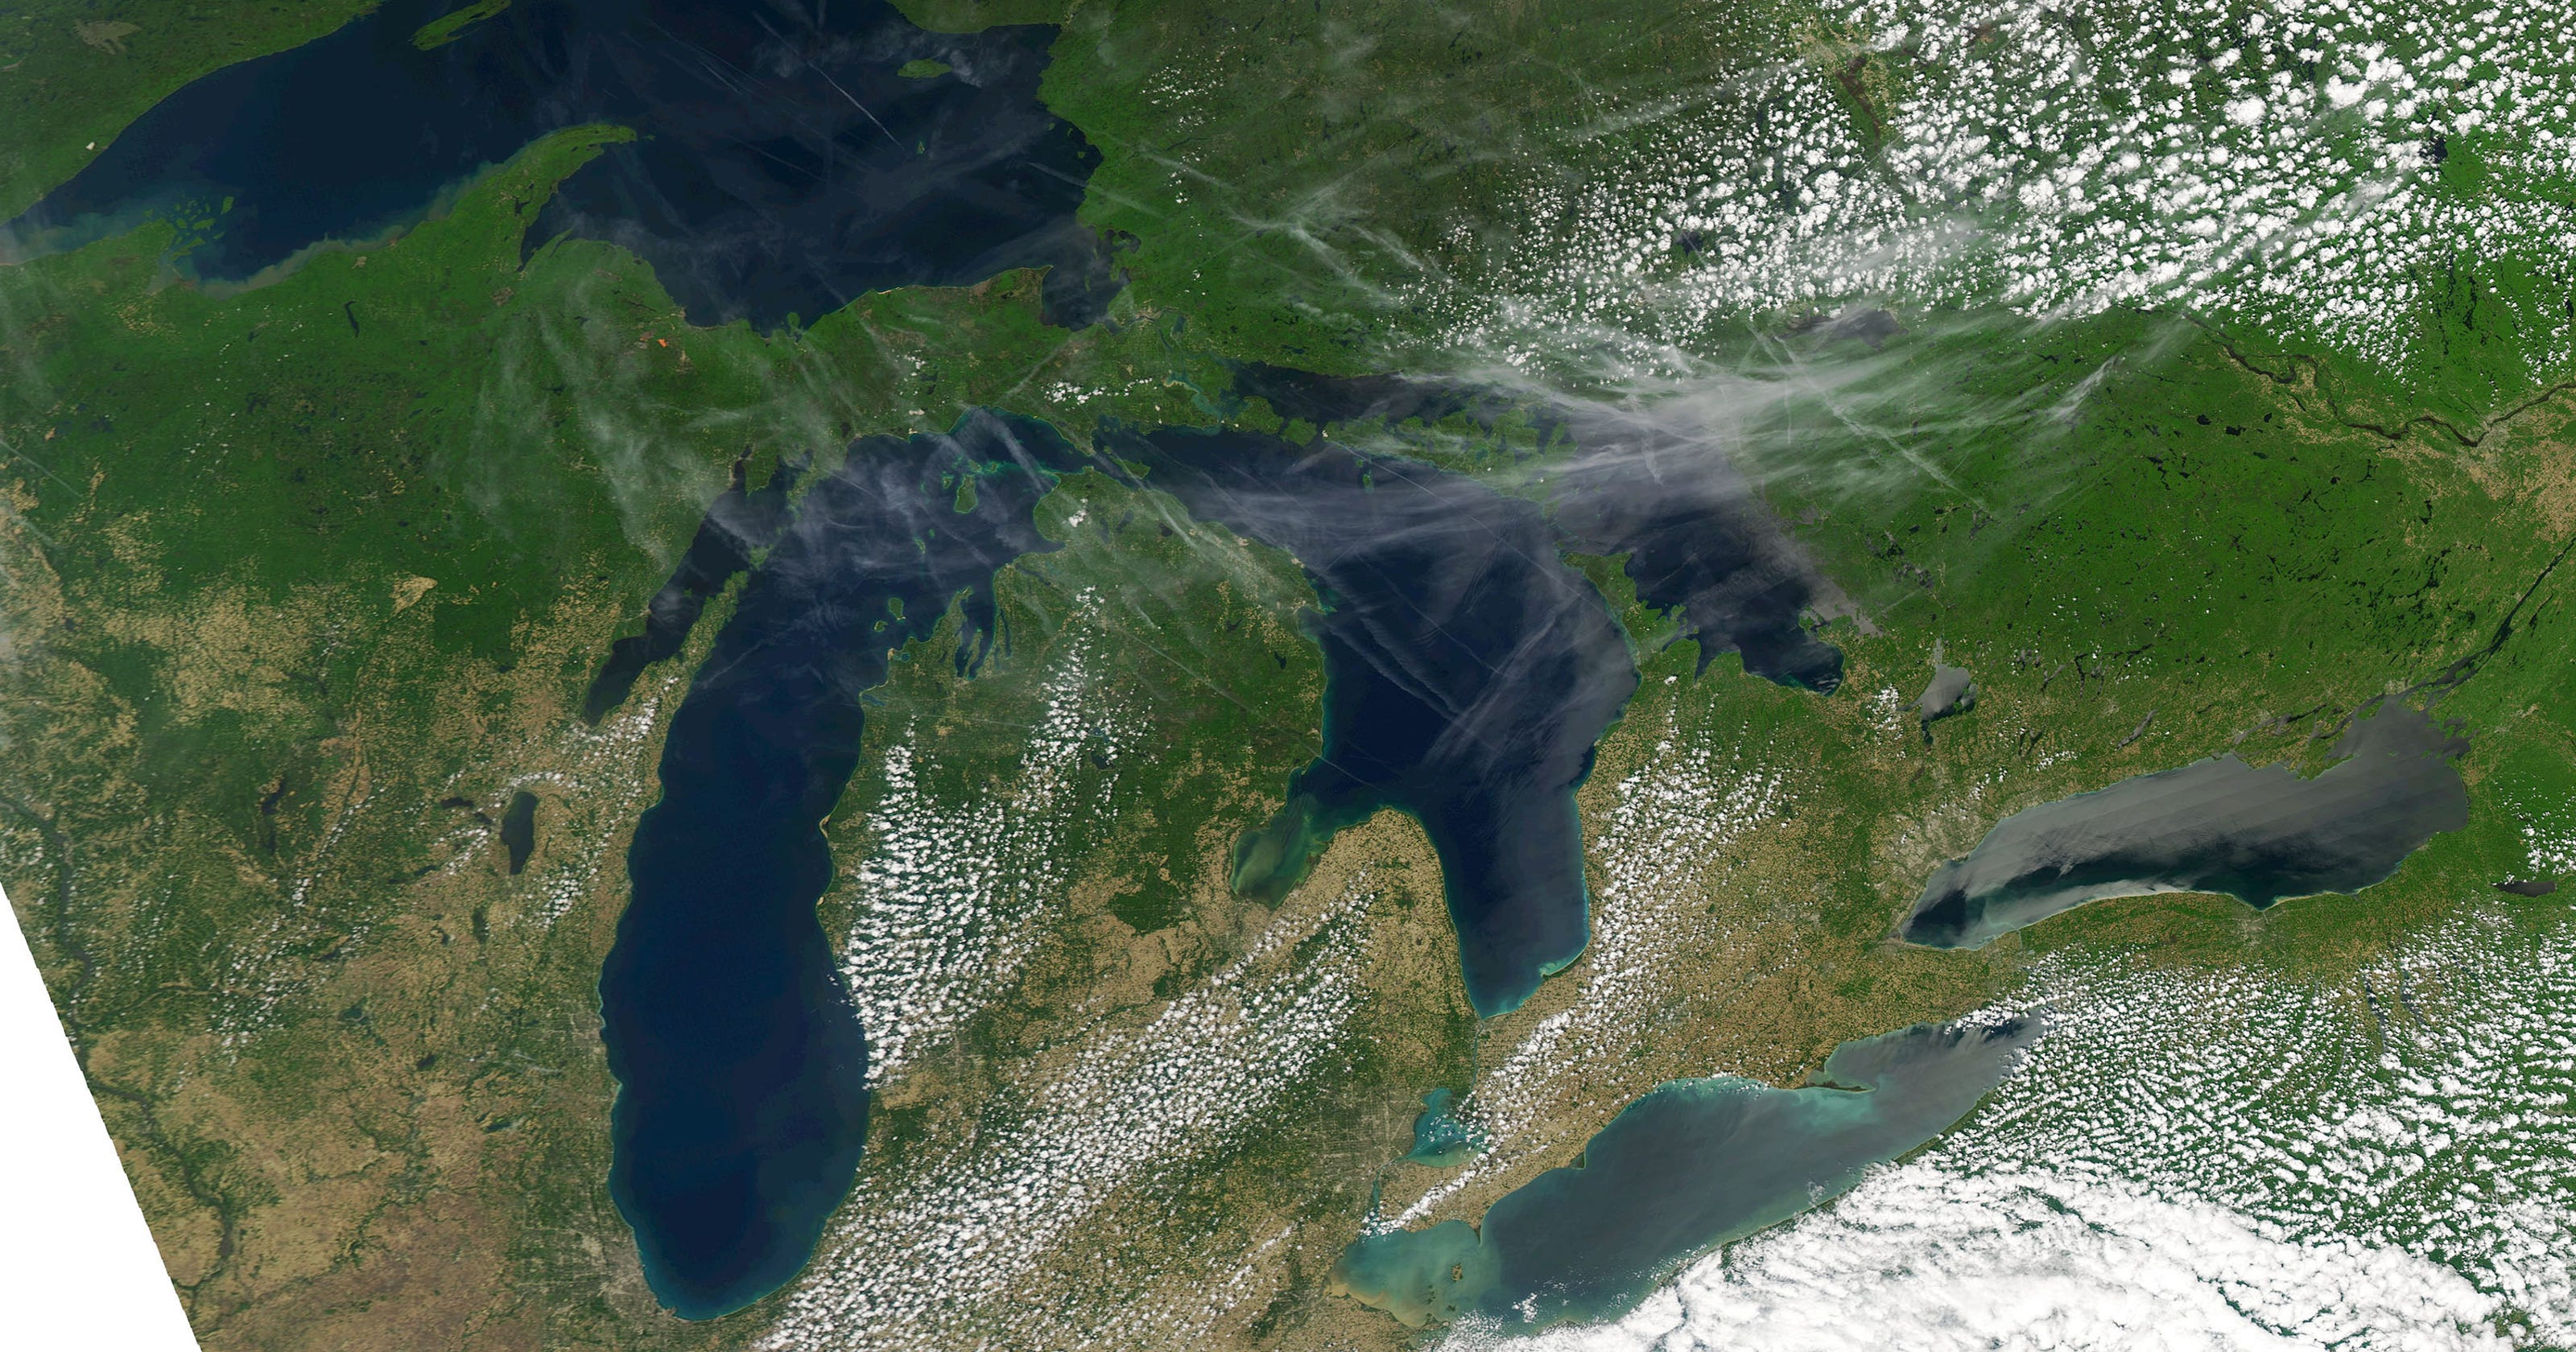 Great Lakes levels rising